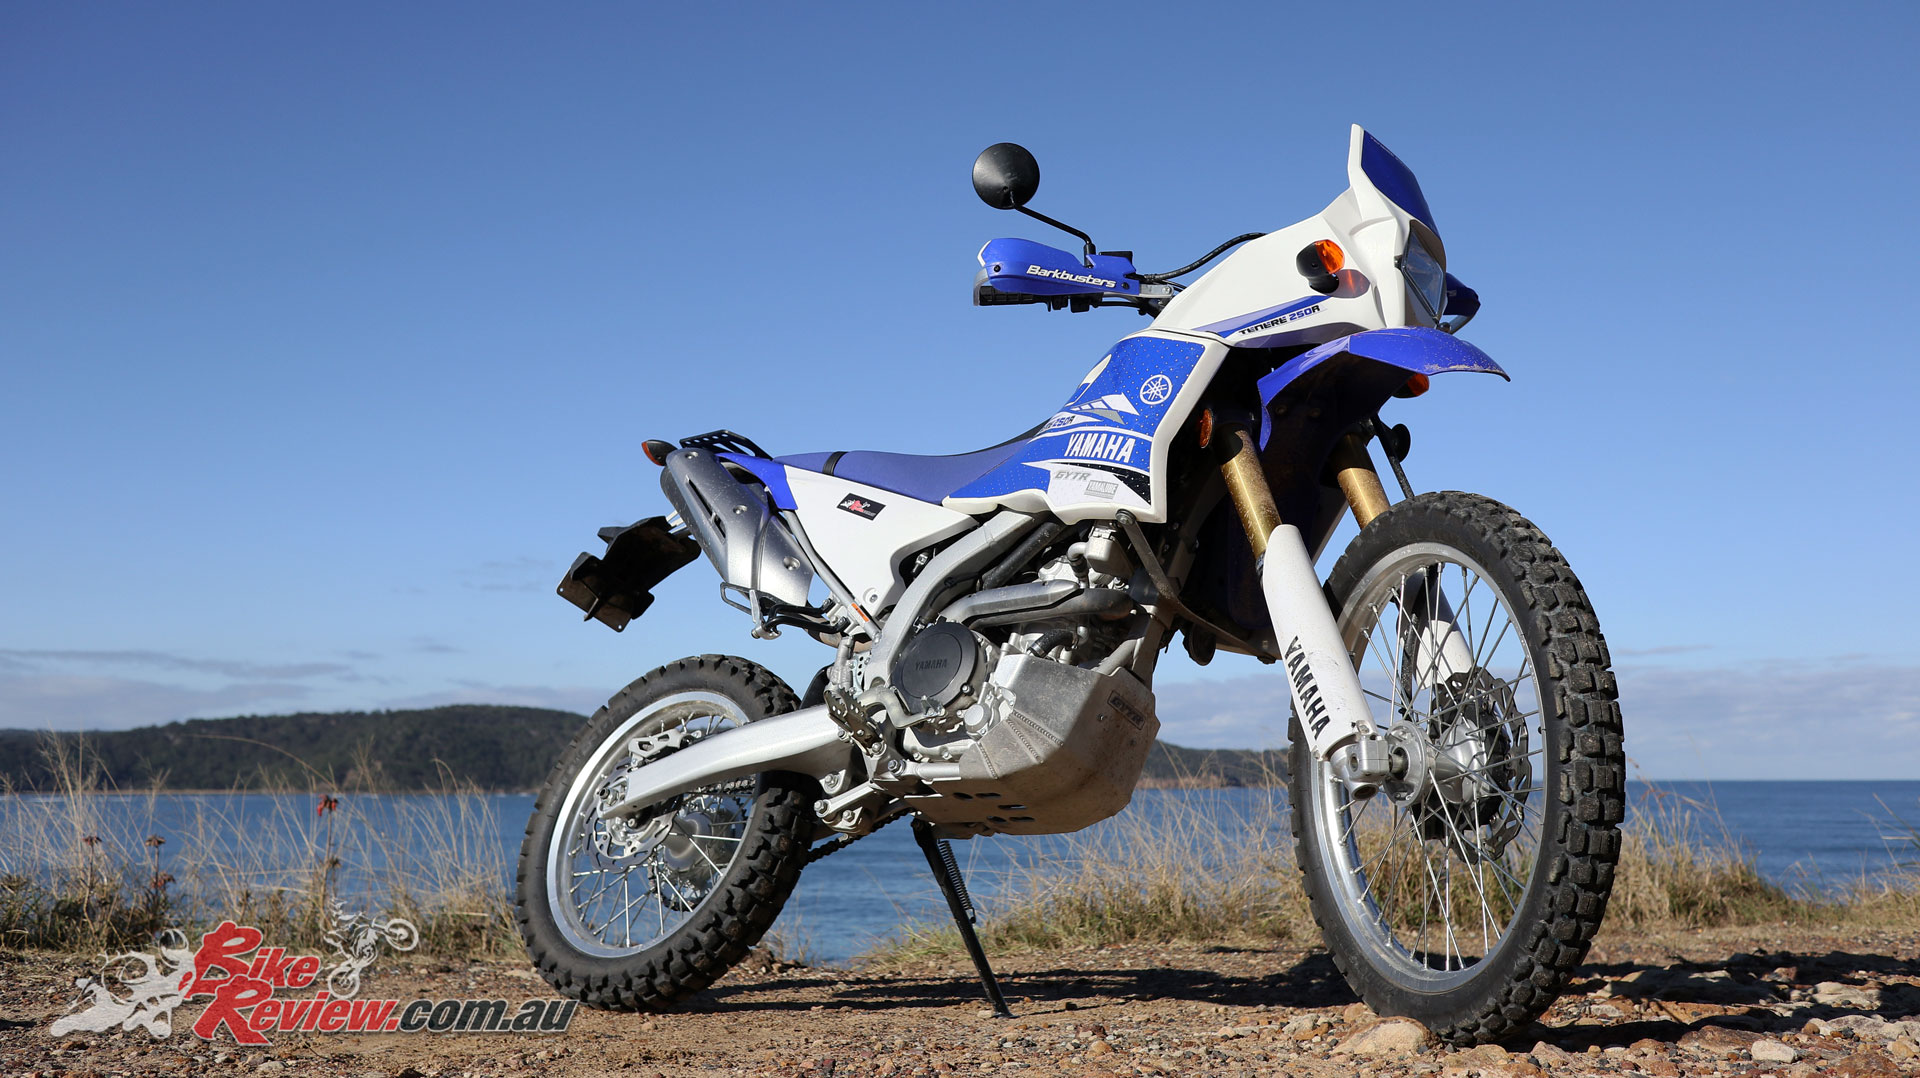 Project 2019 Yamaha WR250R Tenere joins the BikeReview.com.au stable until the end of the year.